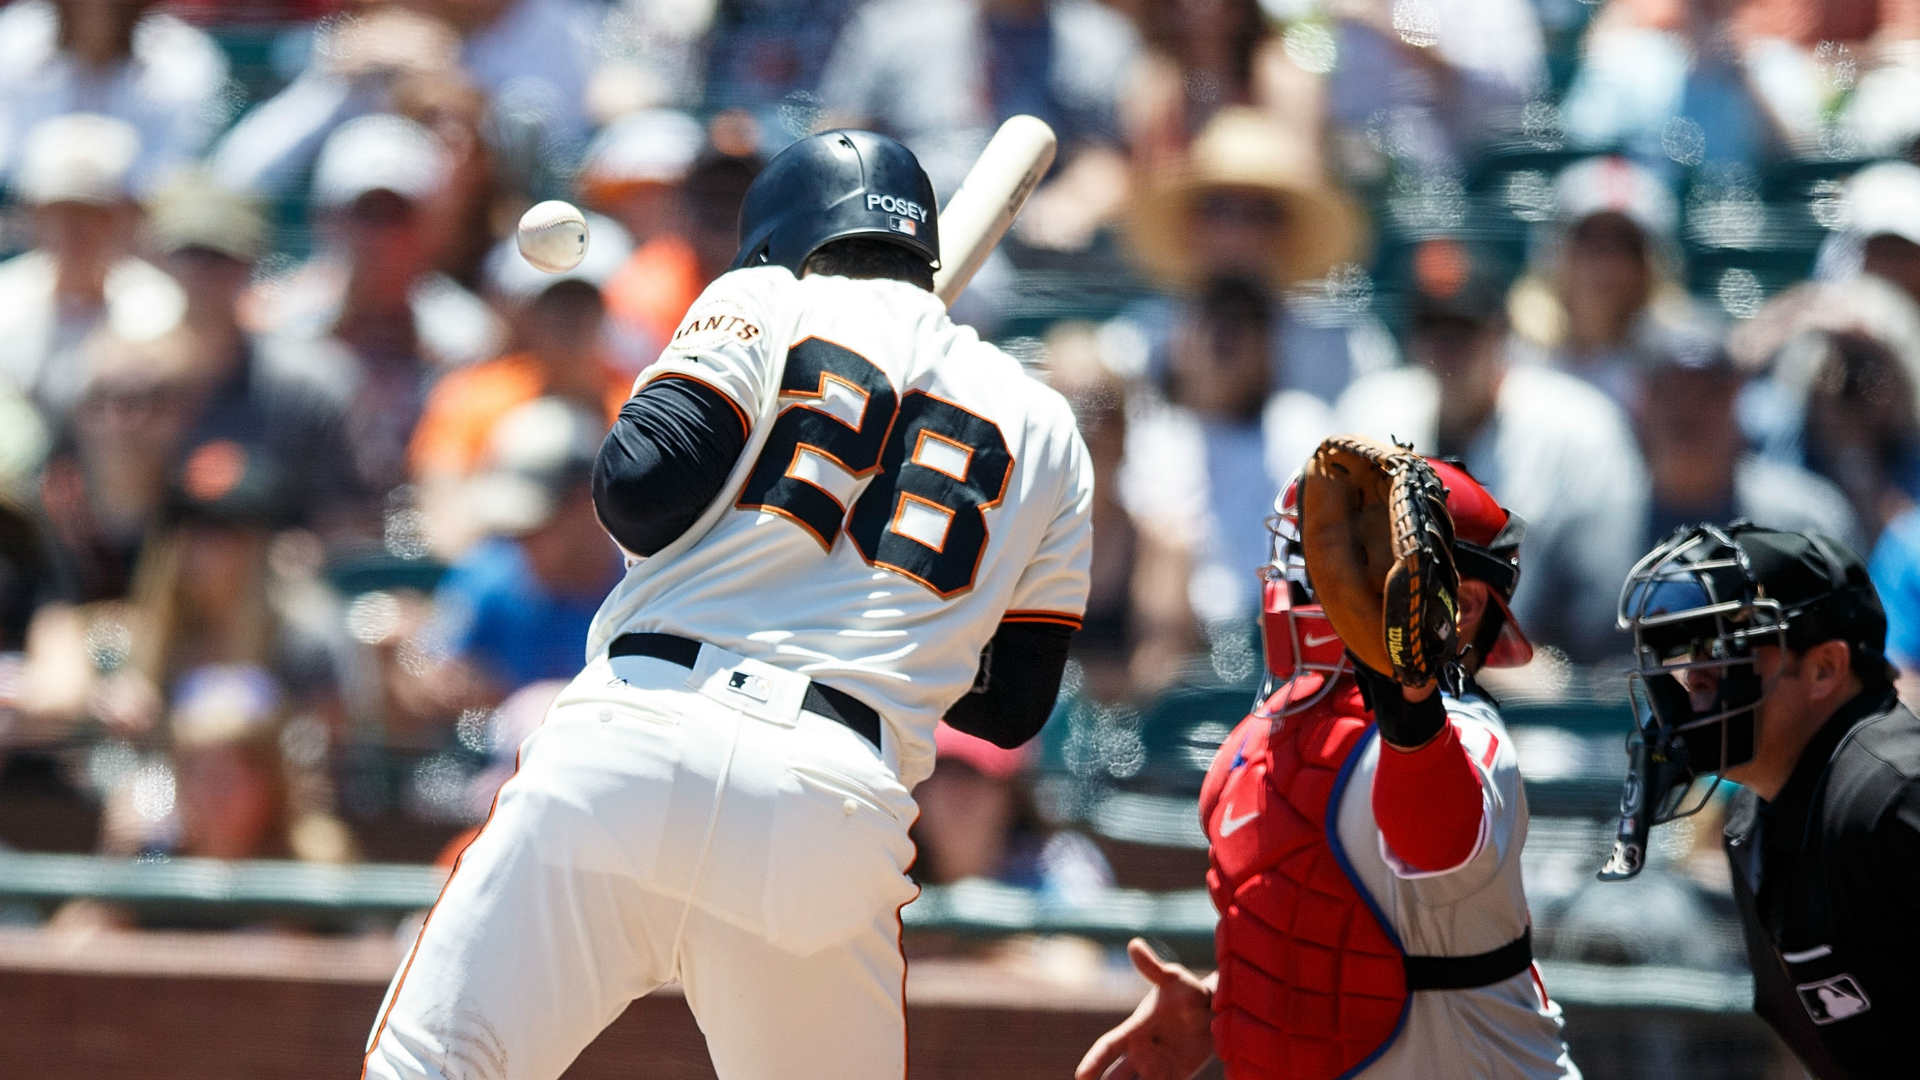 Bochy calls Phillies' Neris 'an idiot' over Posey HBP